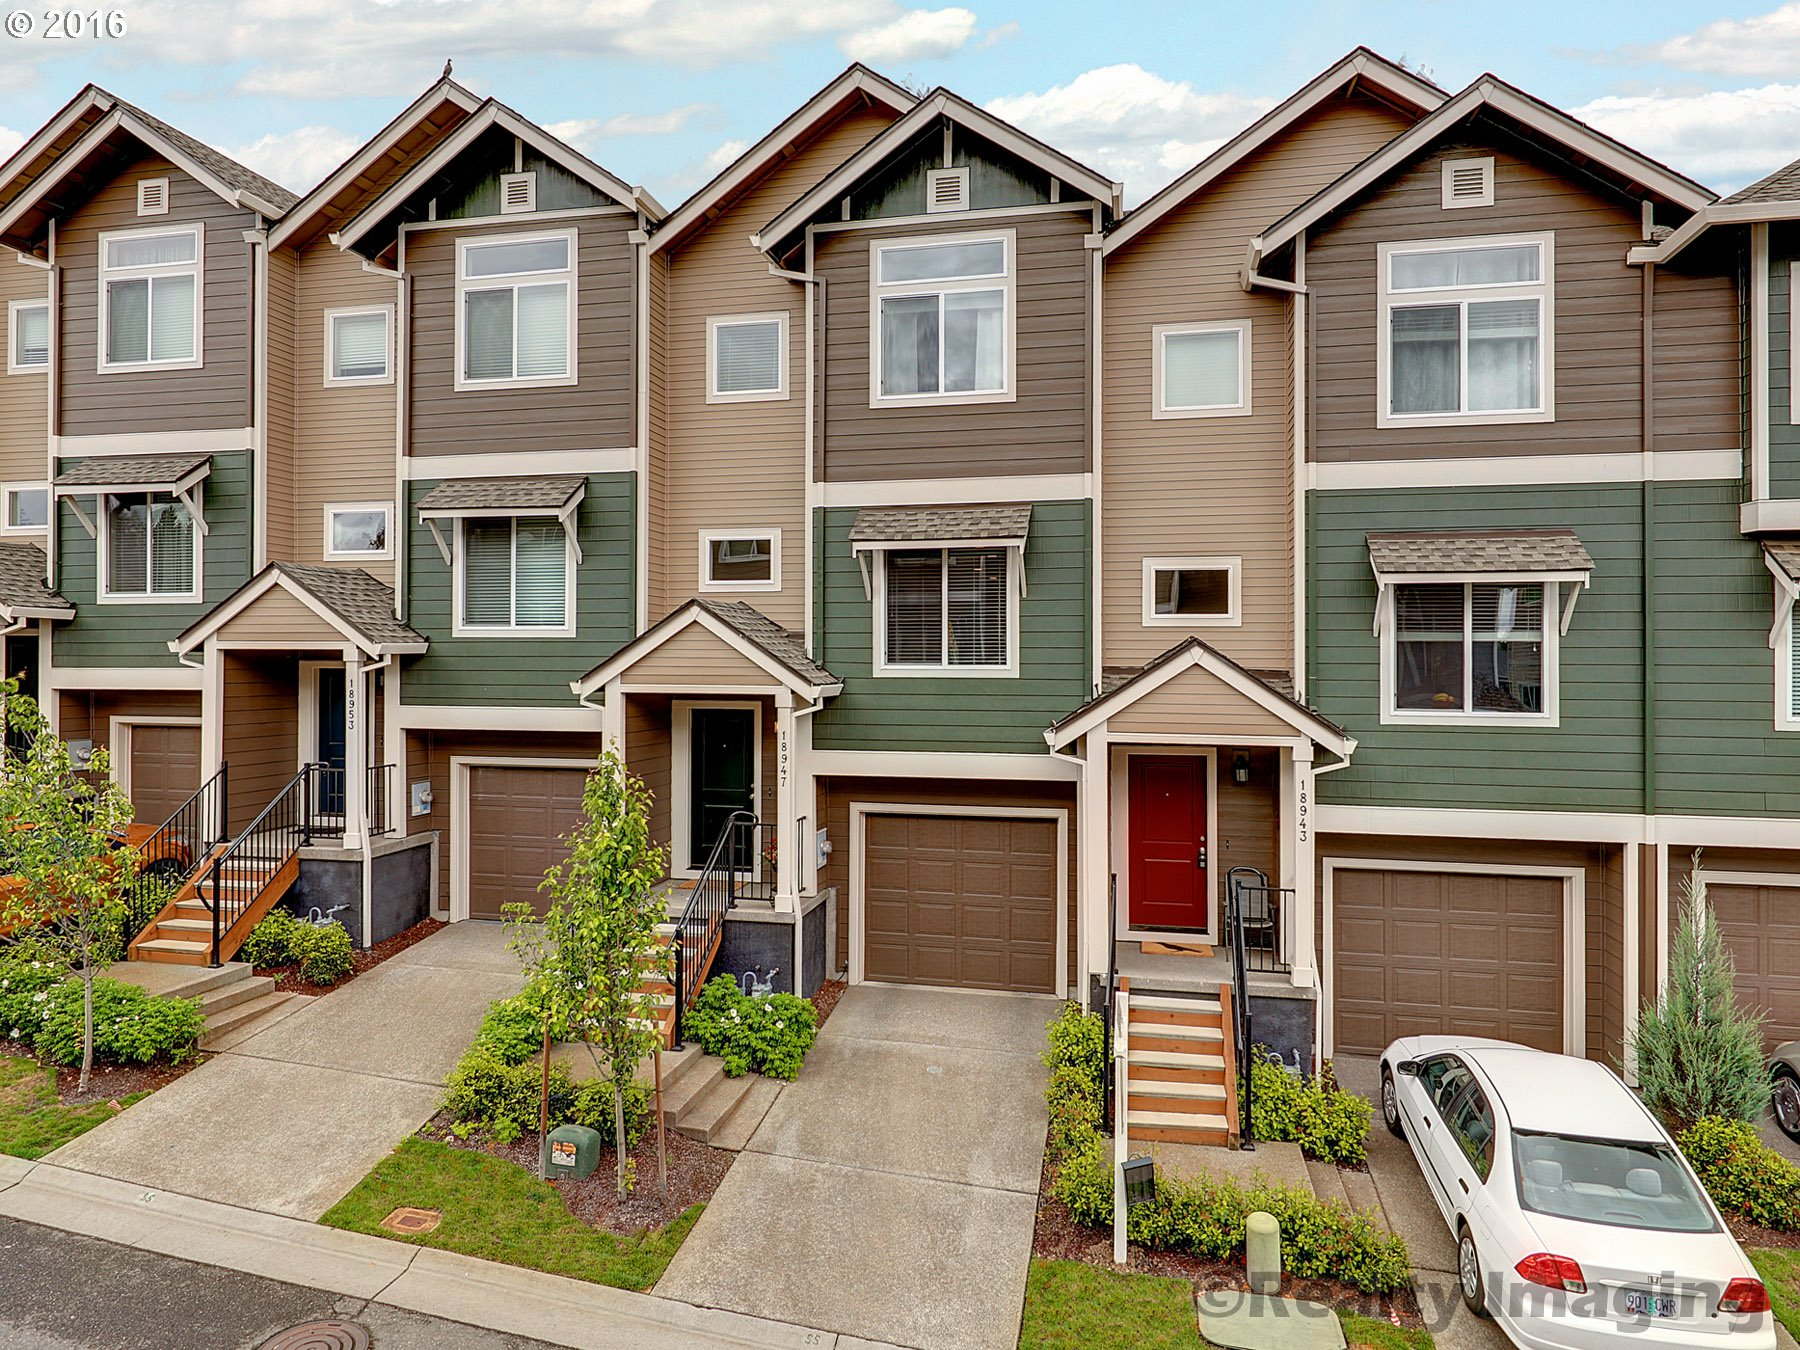 Cornell Road Townhome